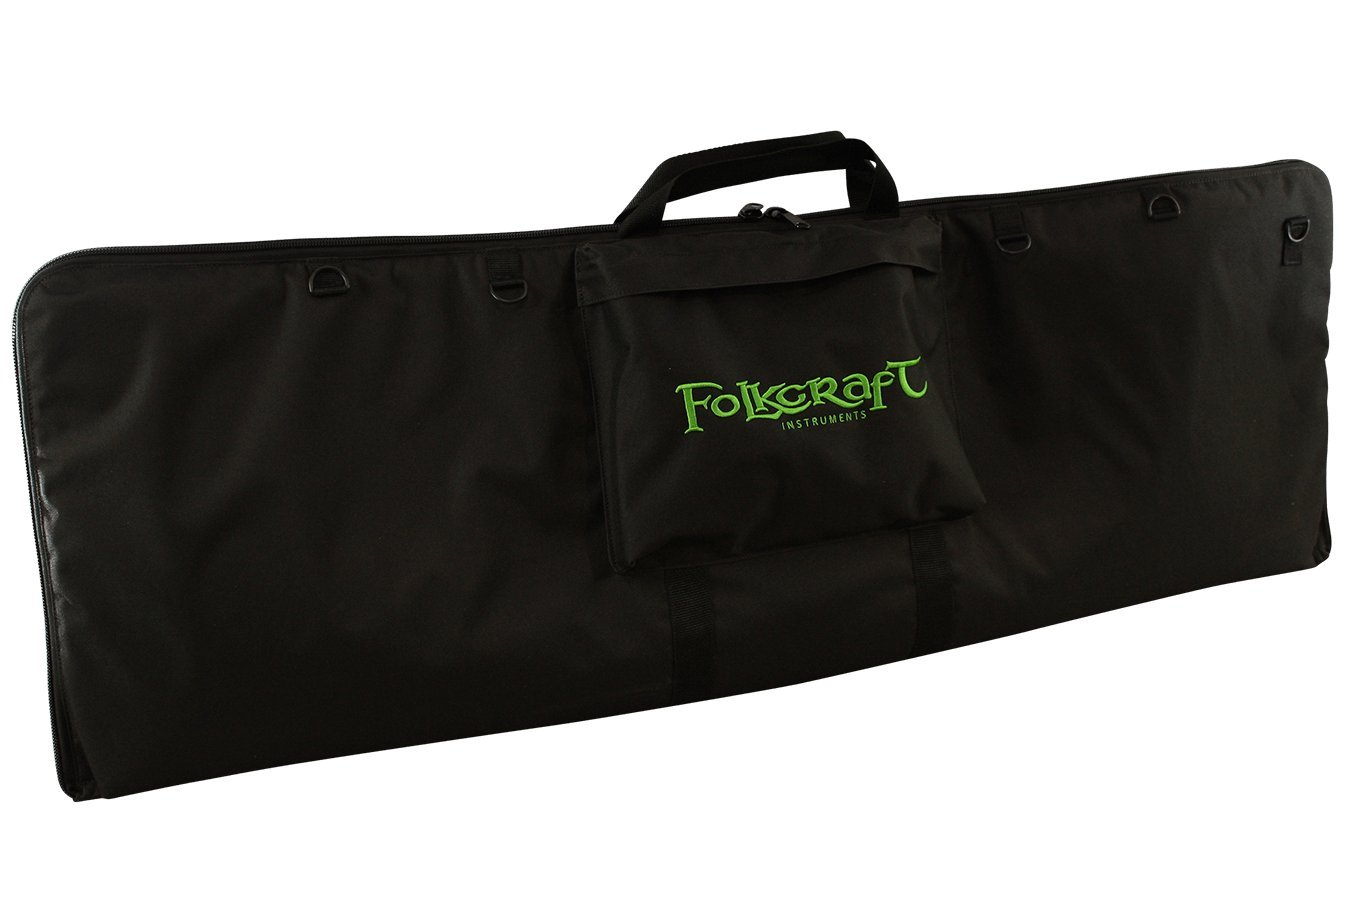 Dulcimer Carrying Bag For Courting Dulcimers Folkcraft Sewing 4334222553